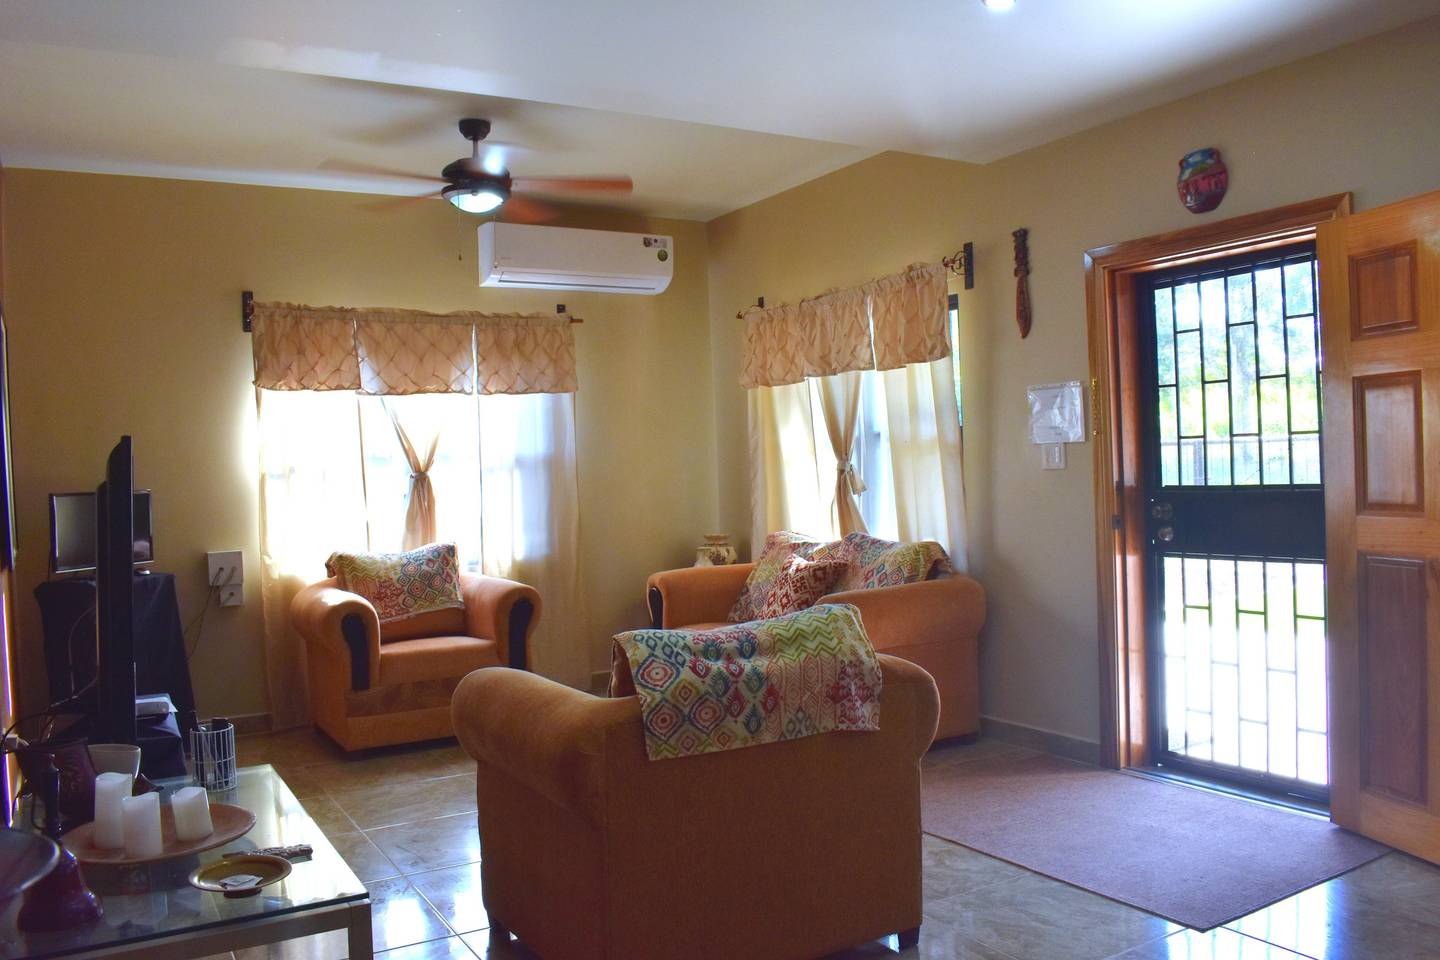 Entire lower floor of Guest House - Garden View photo 25969531